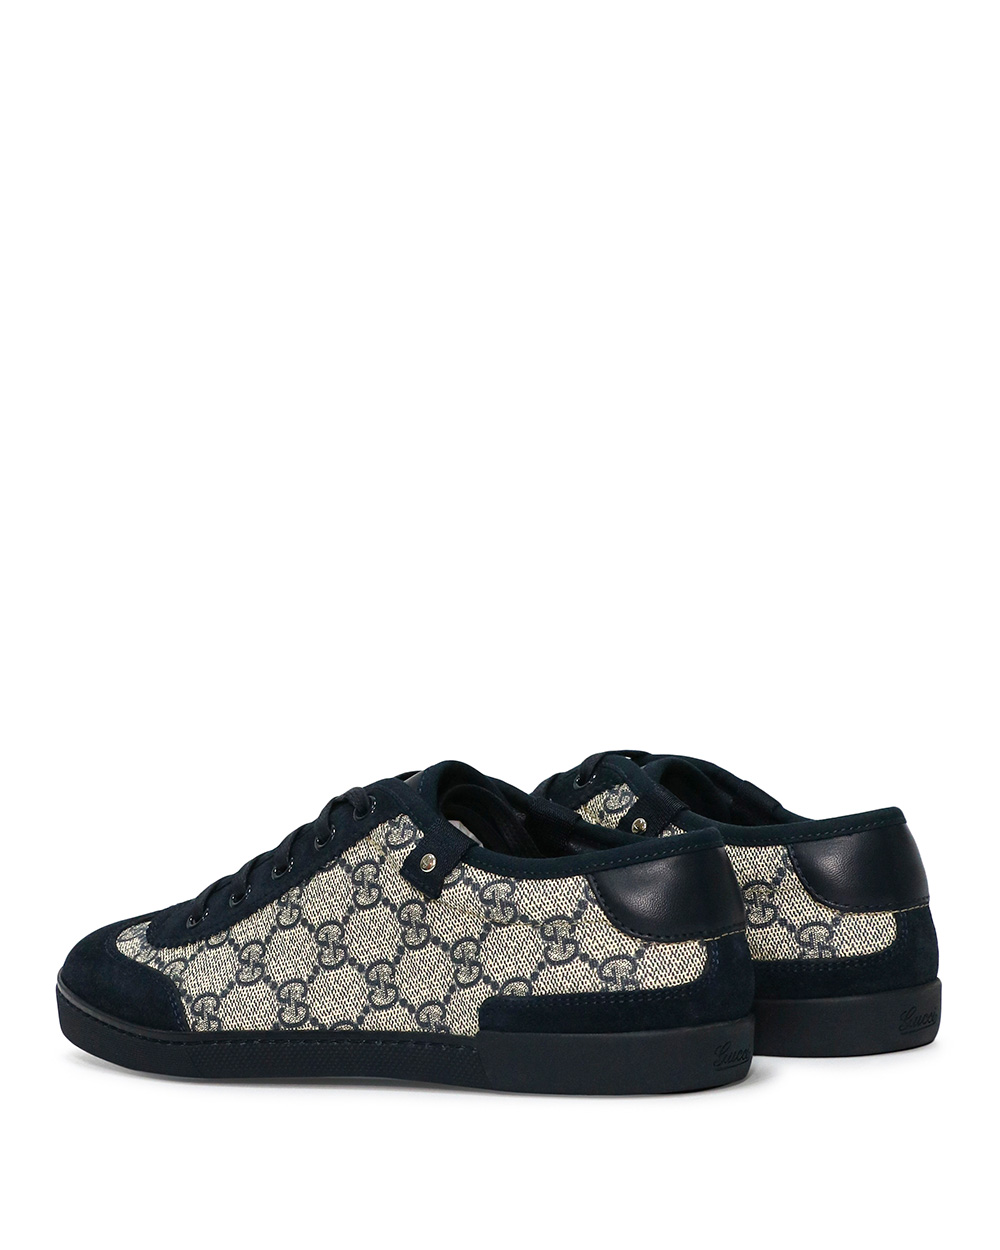 GUCCI Logo Sneakers 246338KGDQ0 2